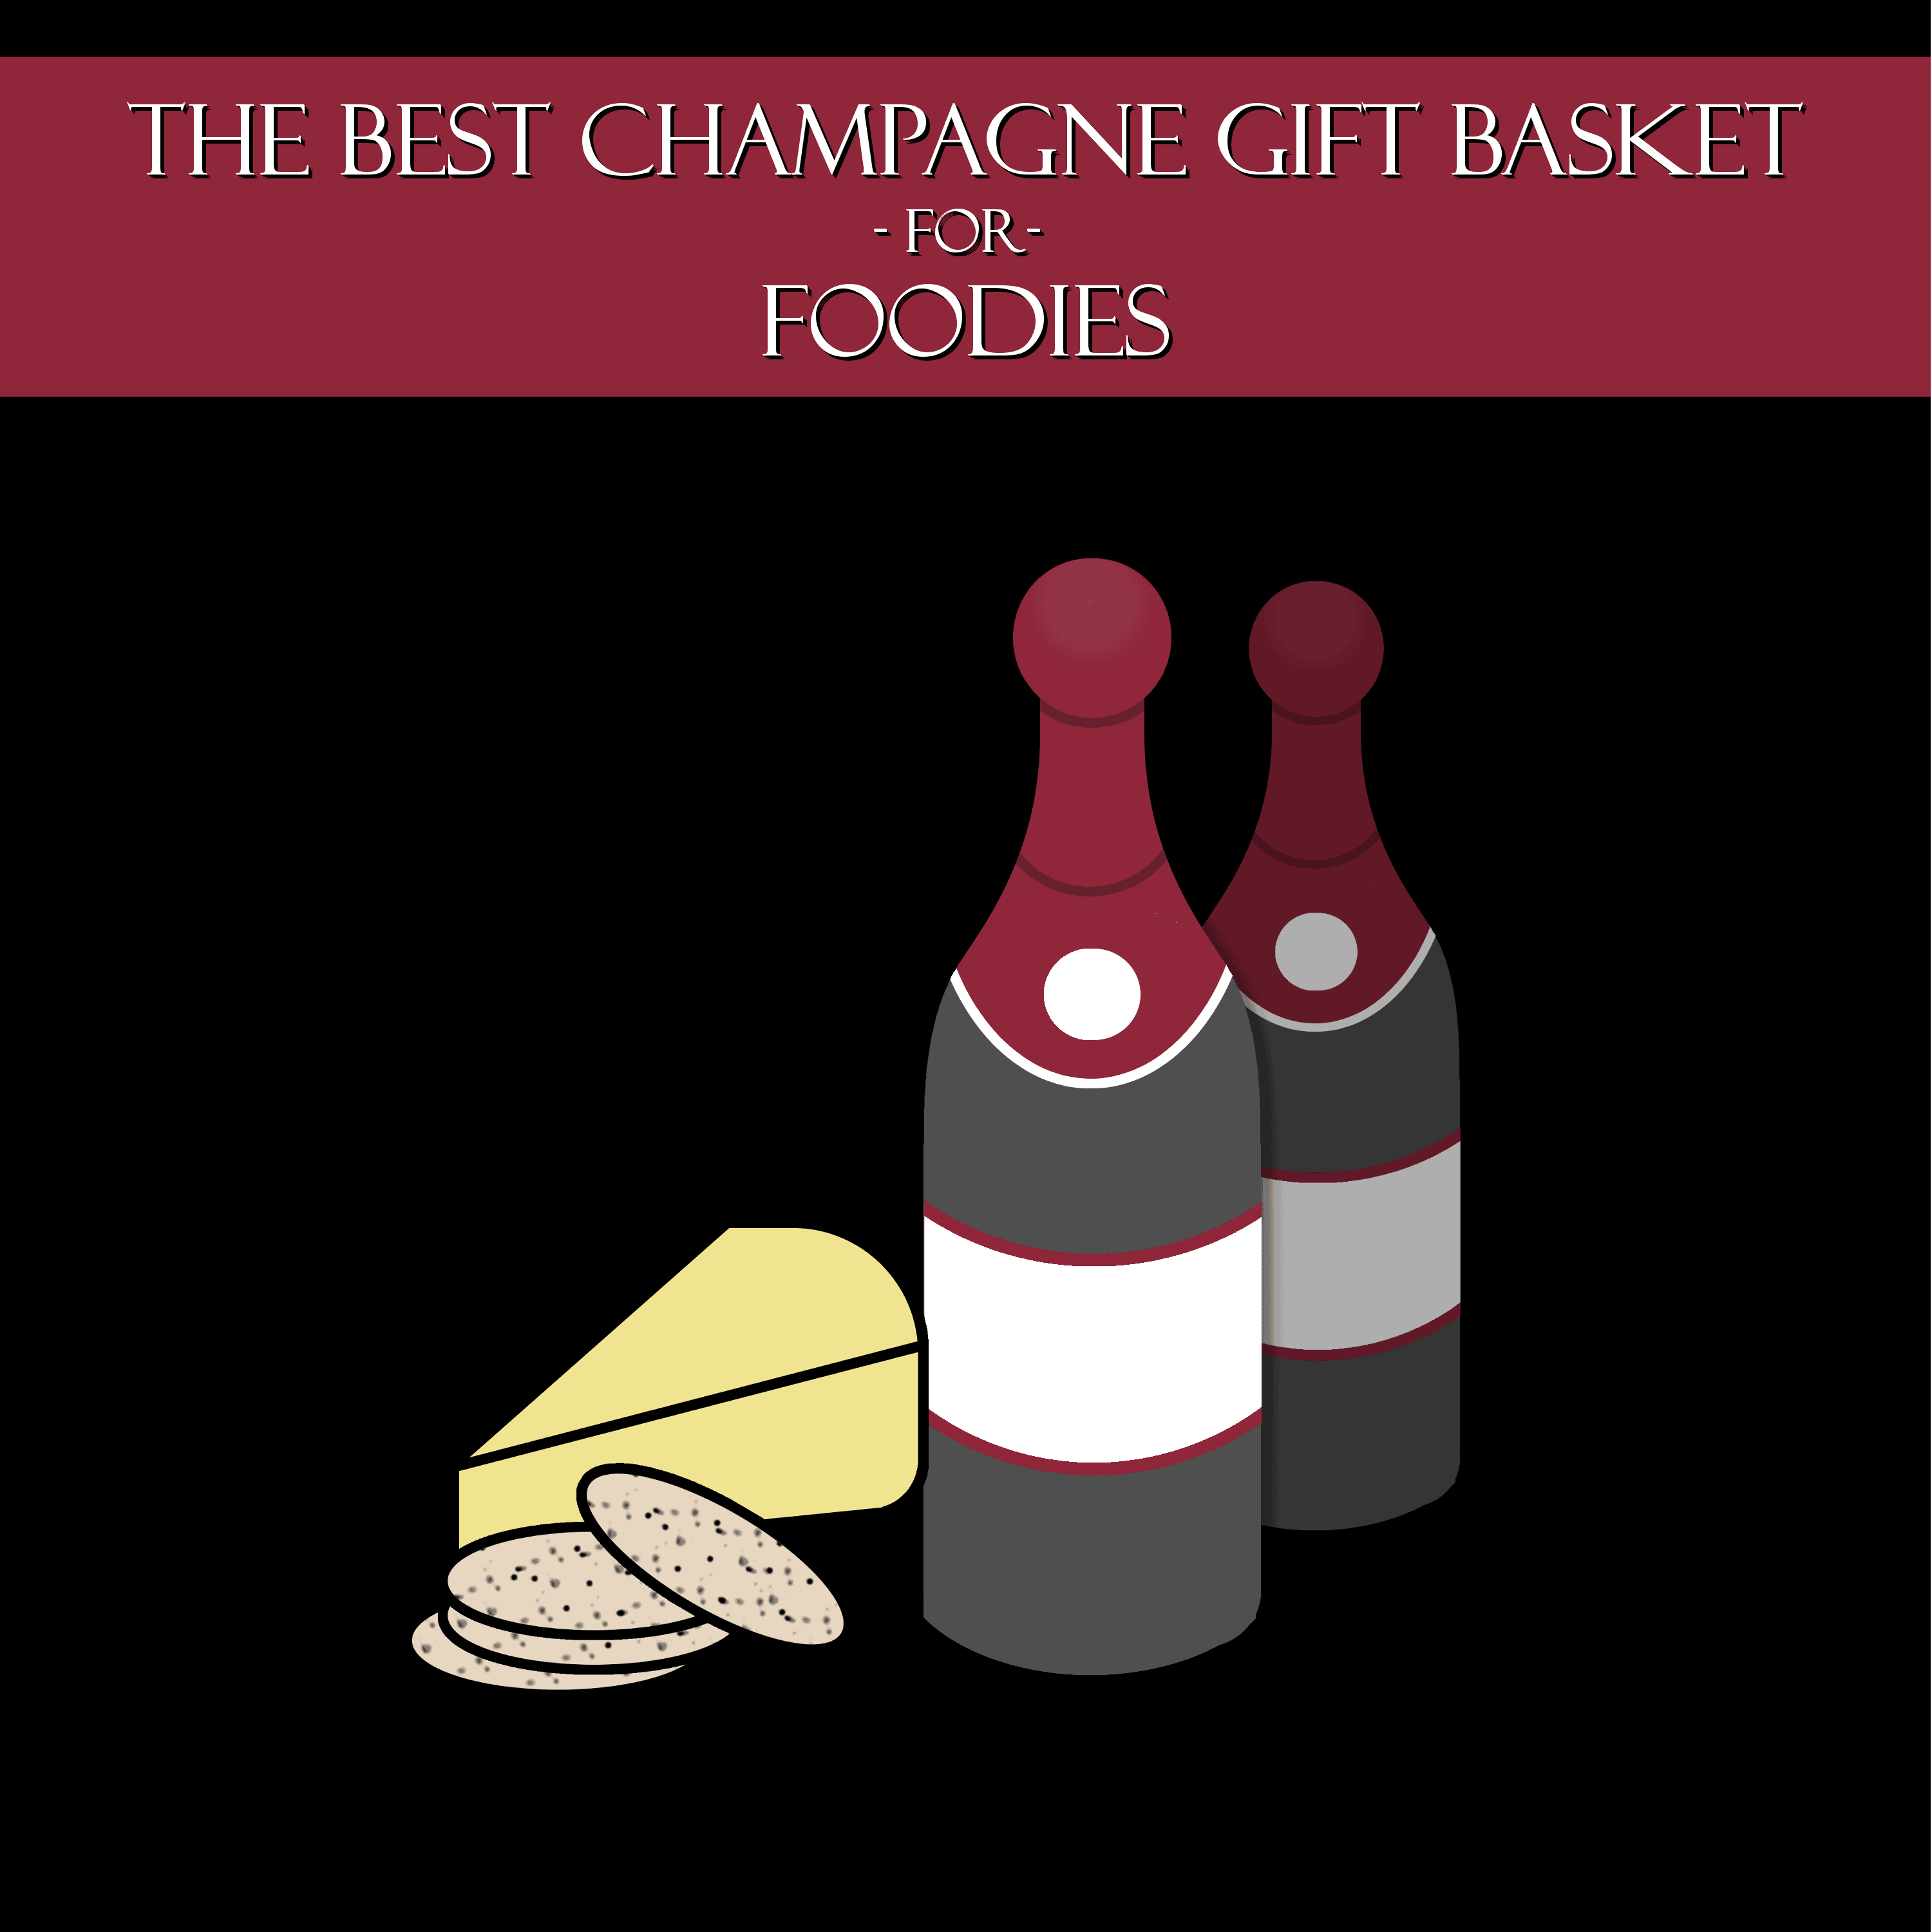 Best Champagne gift basket idea for foodies